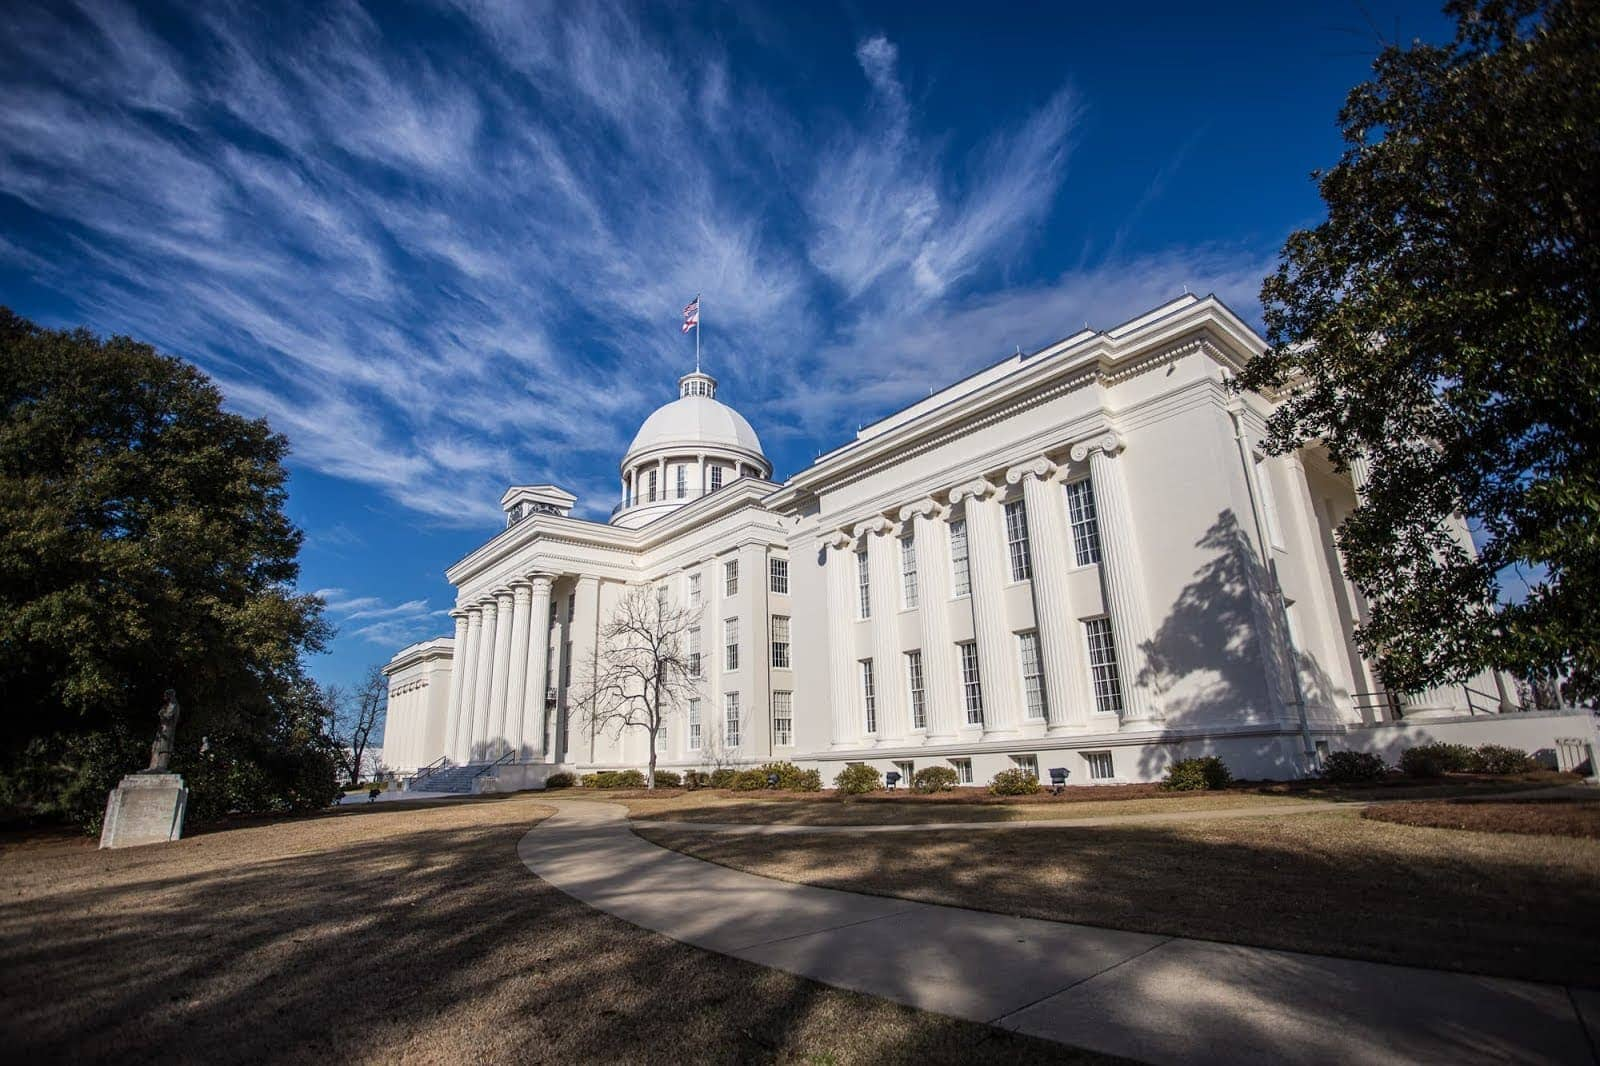 Alabama State Capitol by Laurence Norah-2